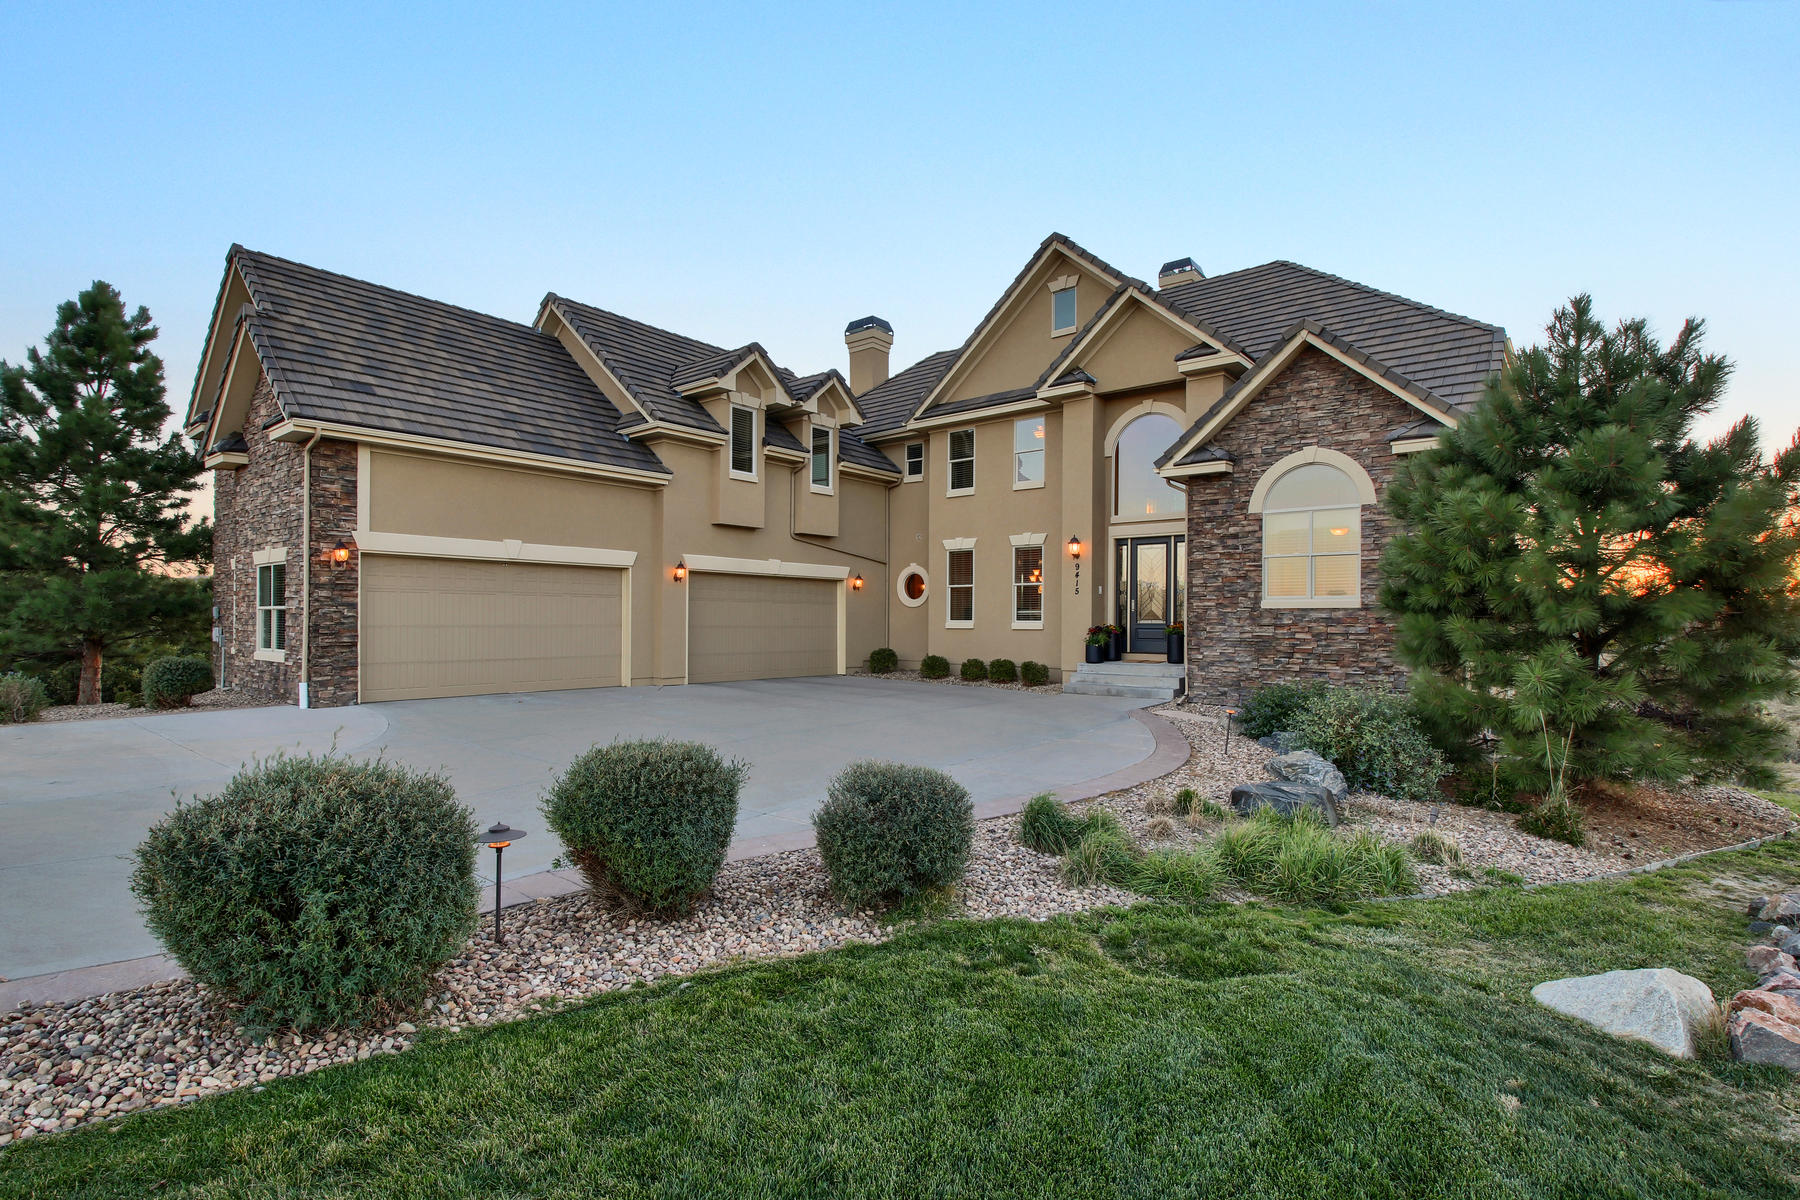 Property for Active at Wild Gulch 9415 Wild Gulch Court Parker, Colorado 80138 United States